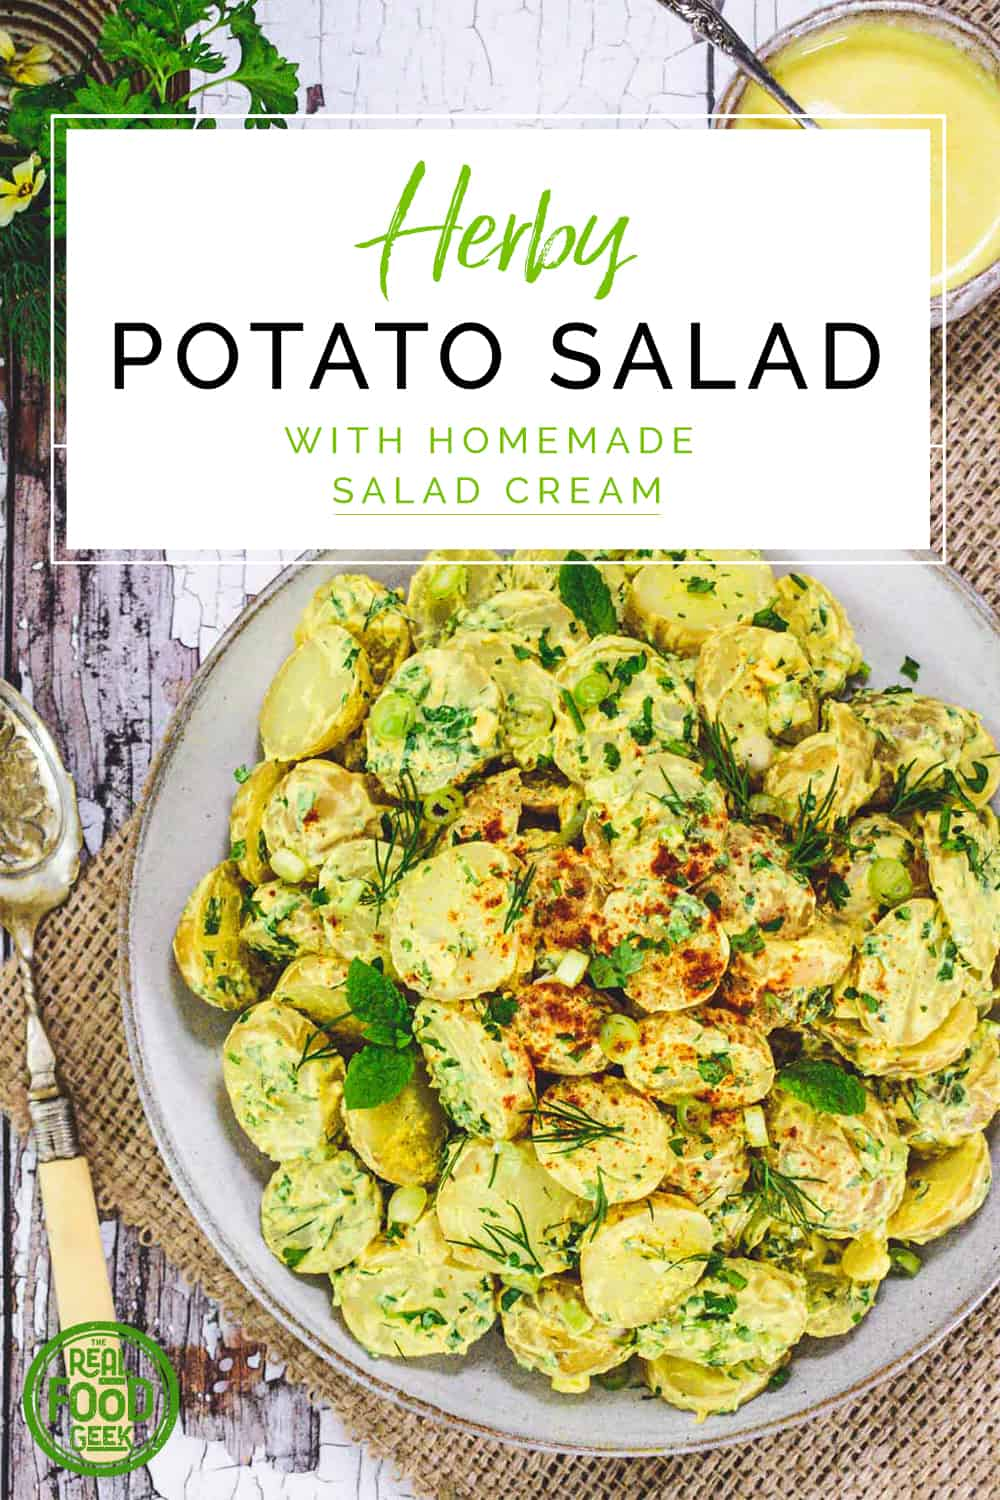 Bowl of herby potato salad with a small pot of salad cream and old spoon and herbs